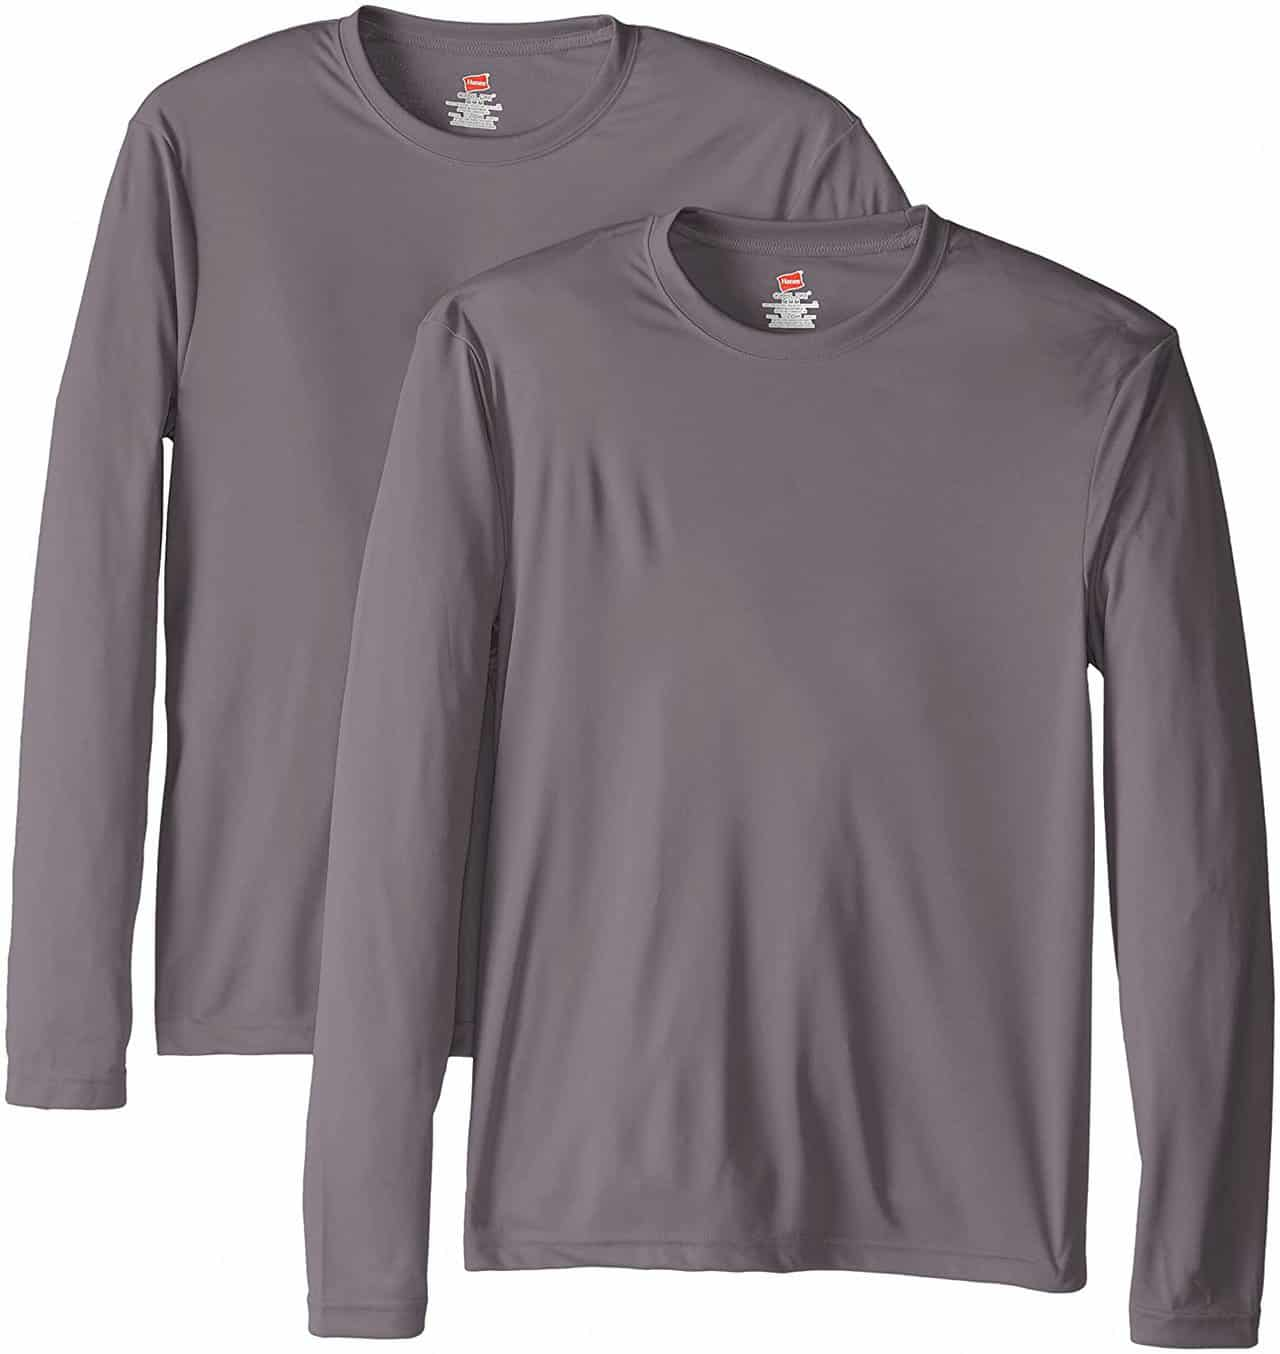 Long Sleeve UPF50+ Fishing Shirt by Hanes